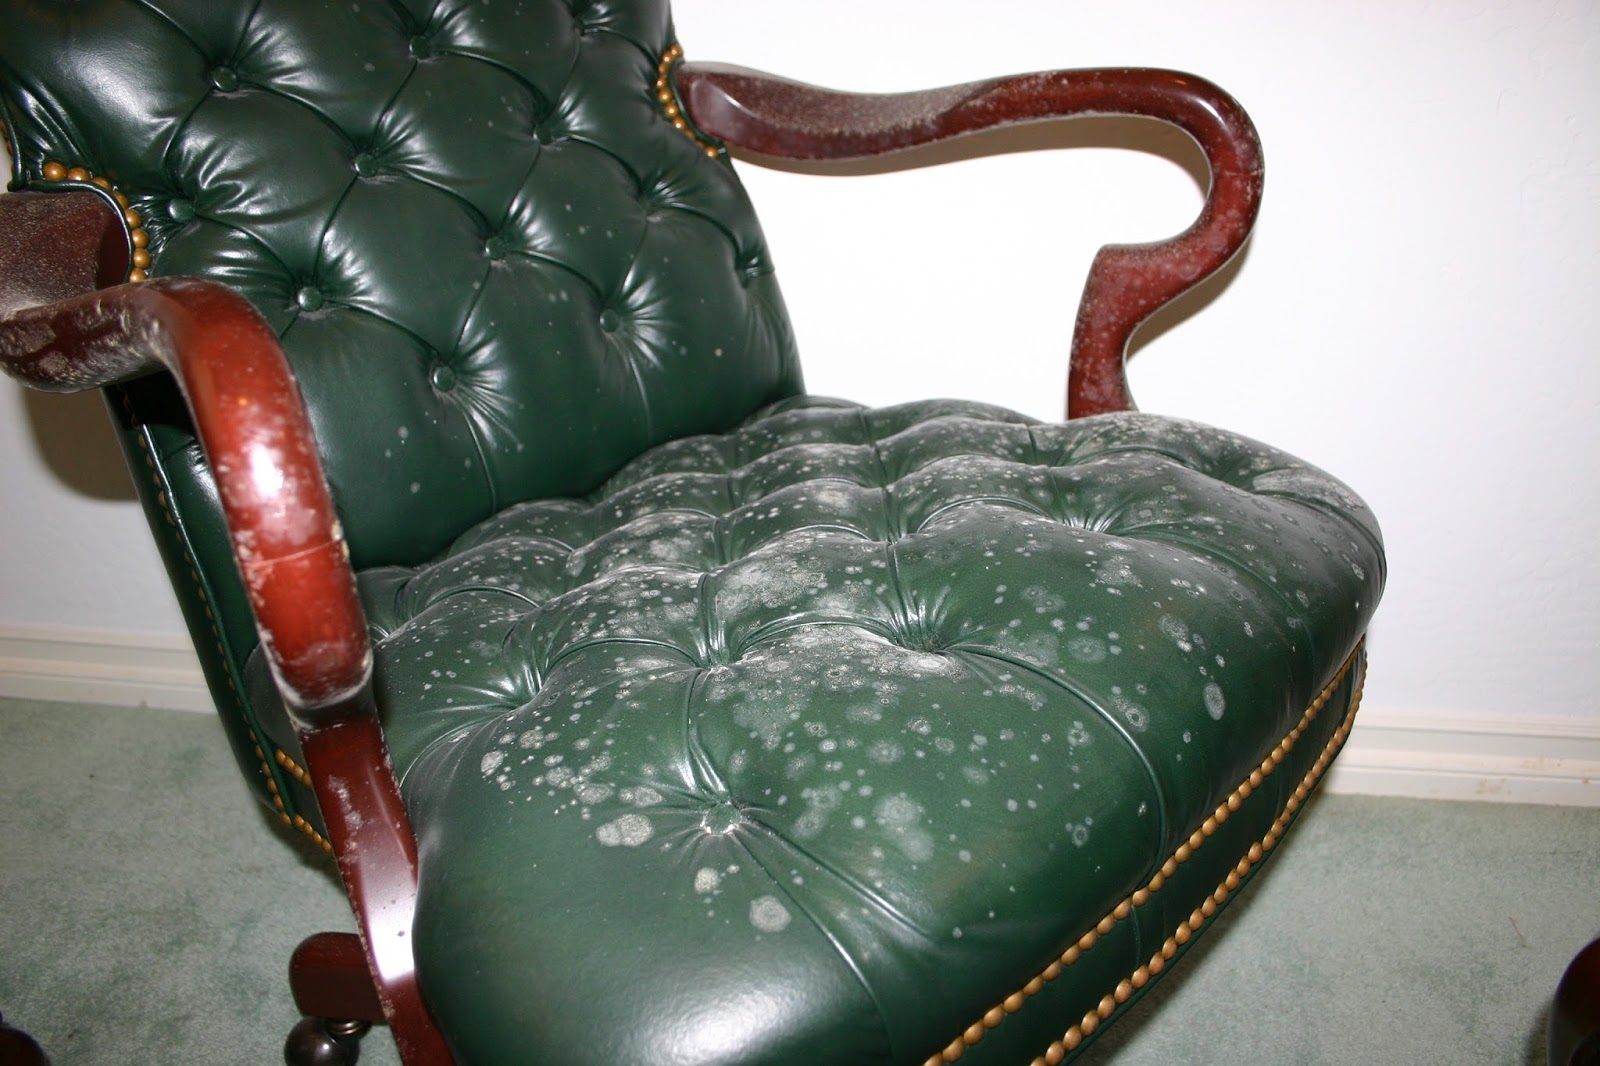 how to remove musty odor from sofa sleeper comfortable bed all stains mold leather